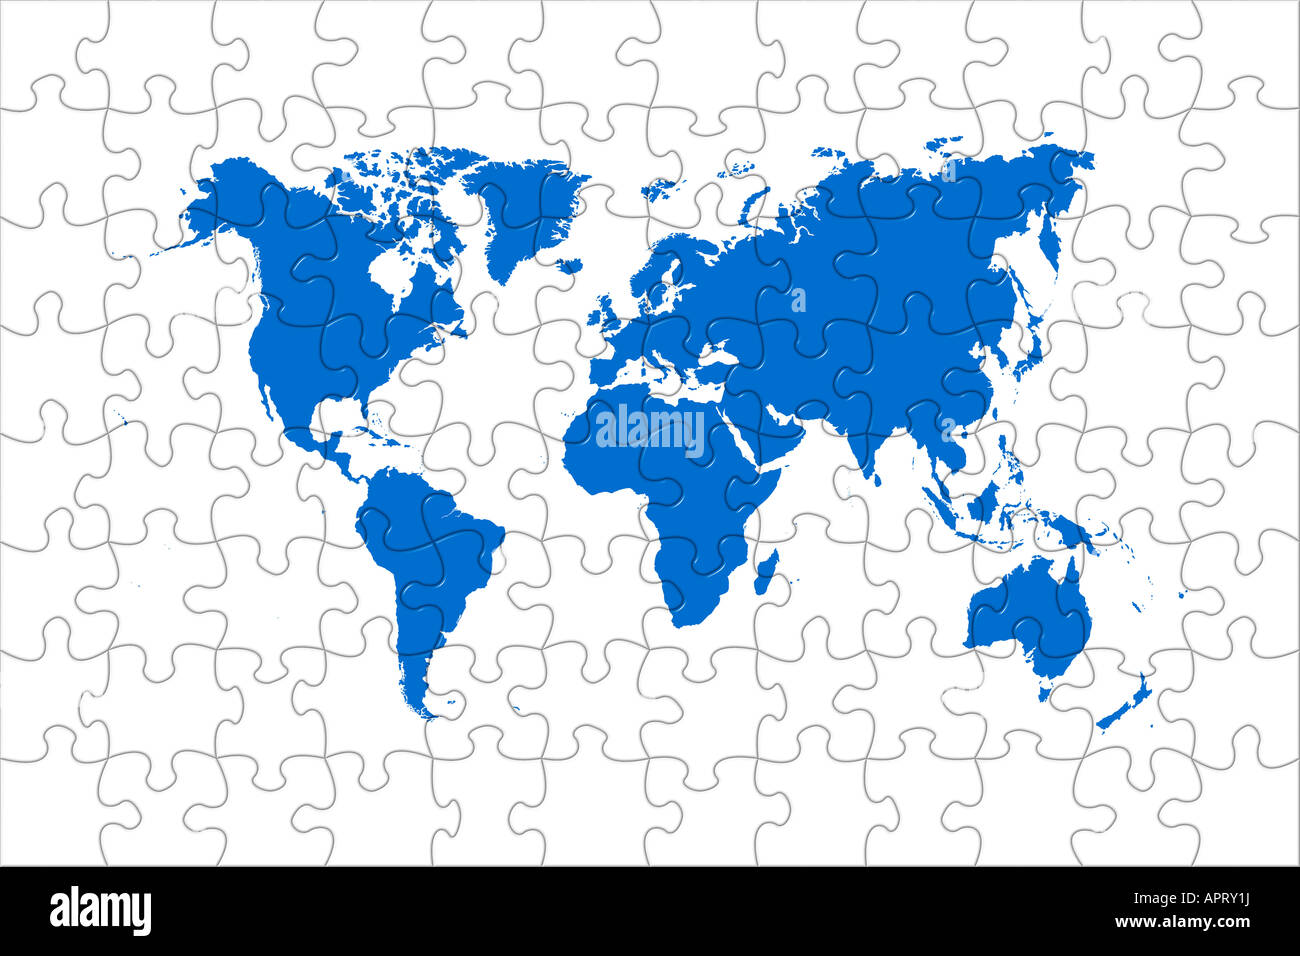 High quality puzzle world map image over a white background stock high quality puzzle world map image over a white background gumiabroncs Images